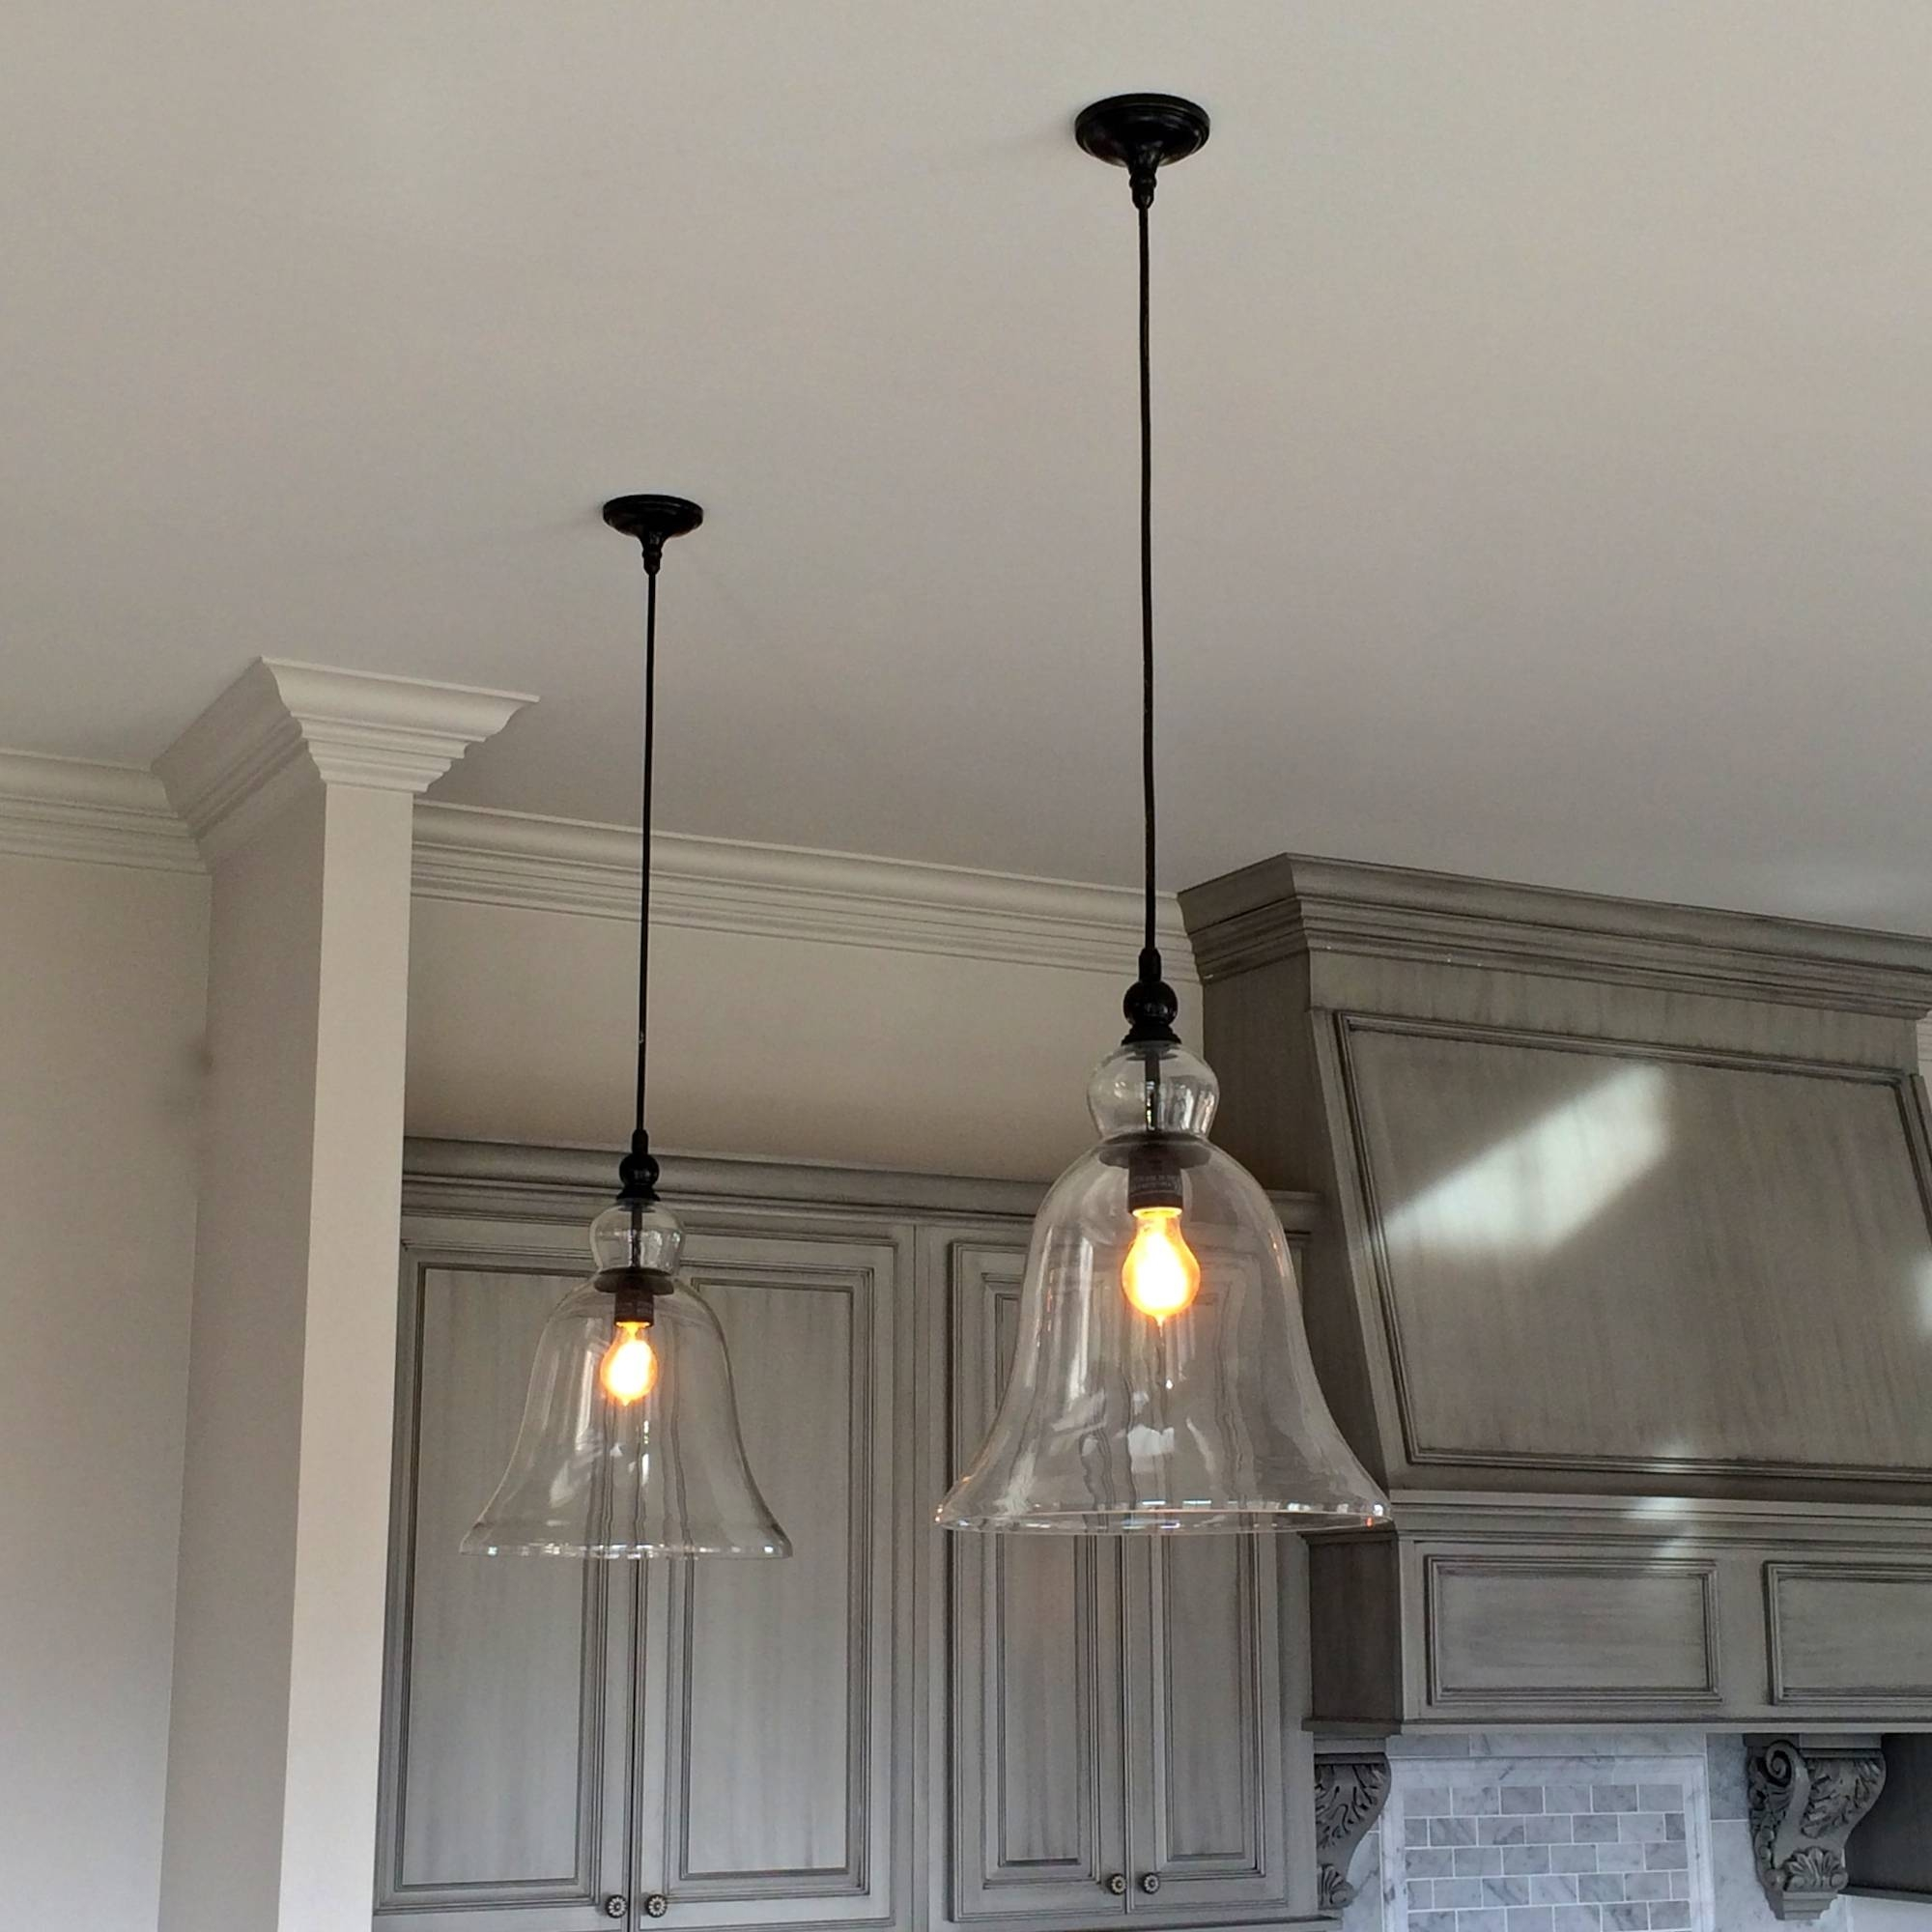 Glass Lighting Wood Clear Kitchen Industrial Pendant Lights Ideas throughout Industrial Glass Pendant Lights (Image 4 of 15)